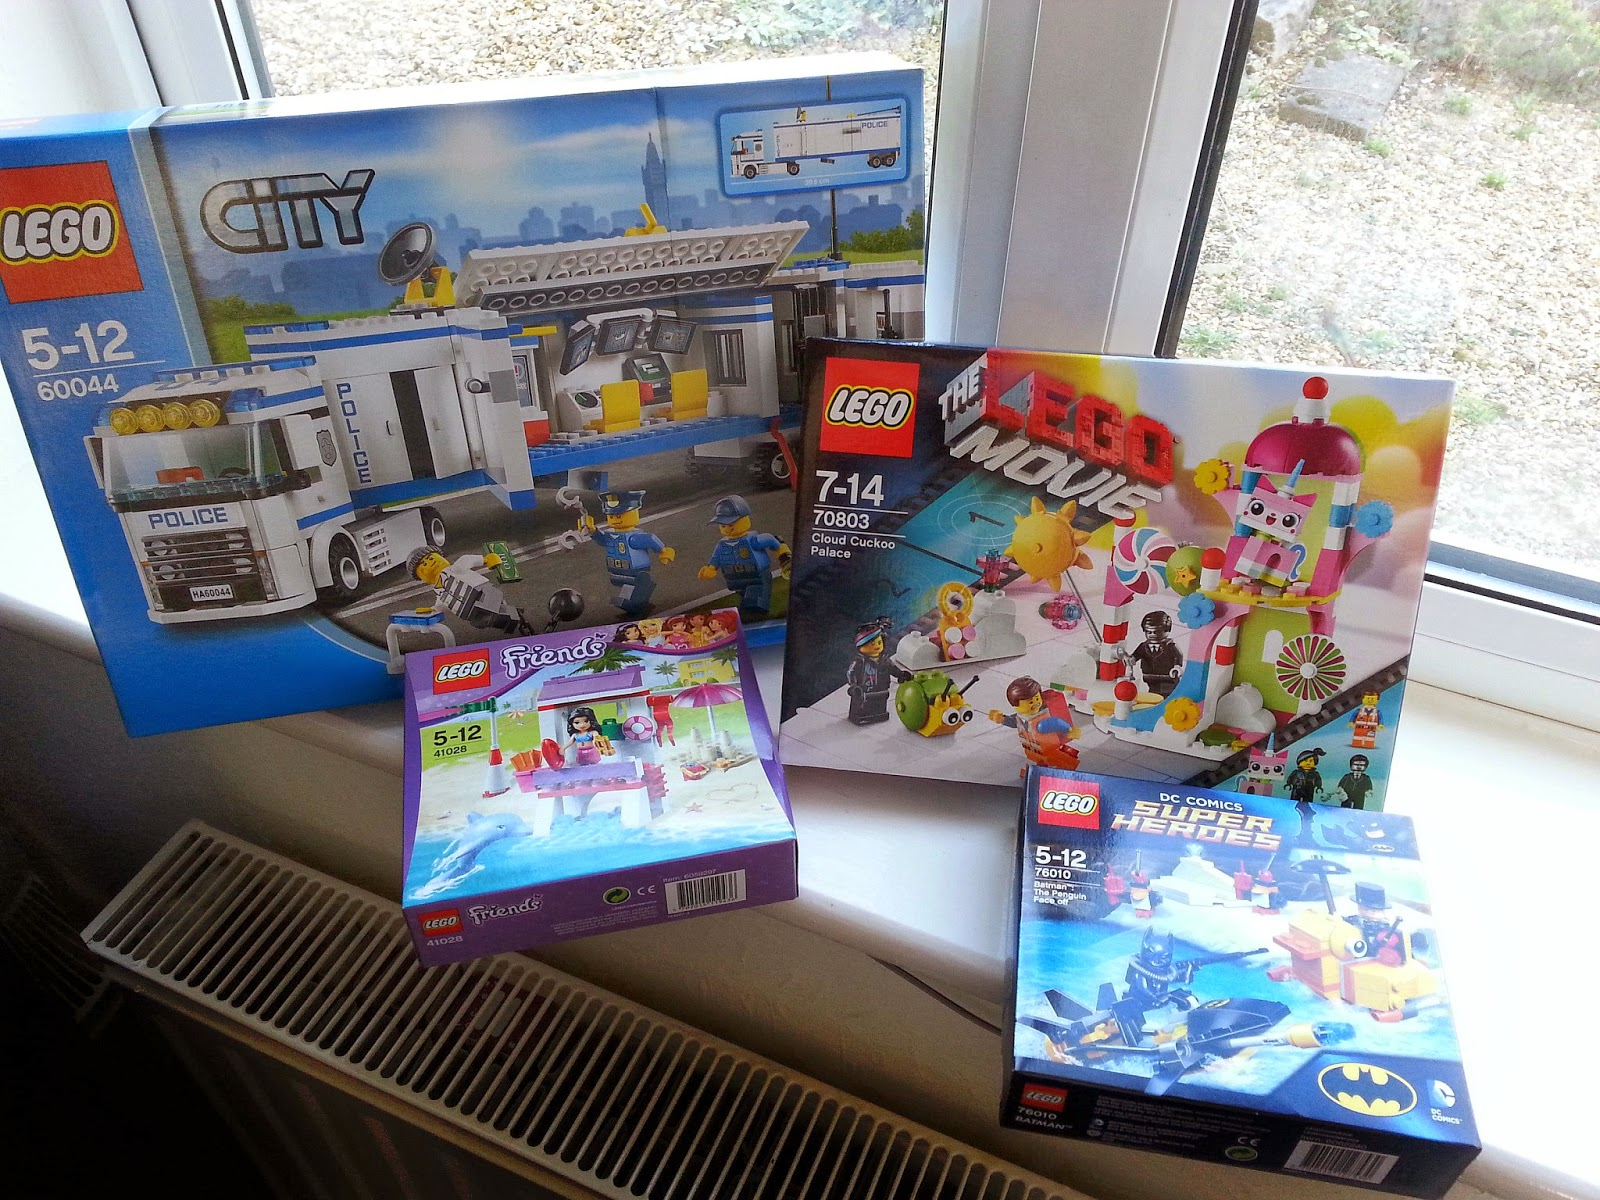 LEGO Spring 2014, LEGO The Movie Cuckoo Palace, LEGO City Mobile Police Unit